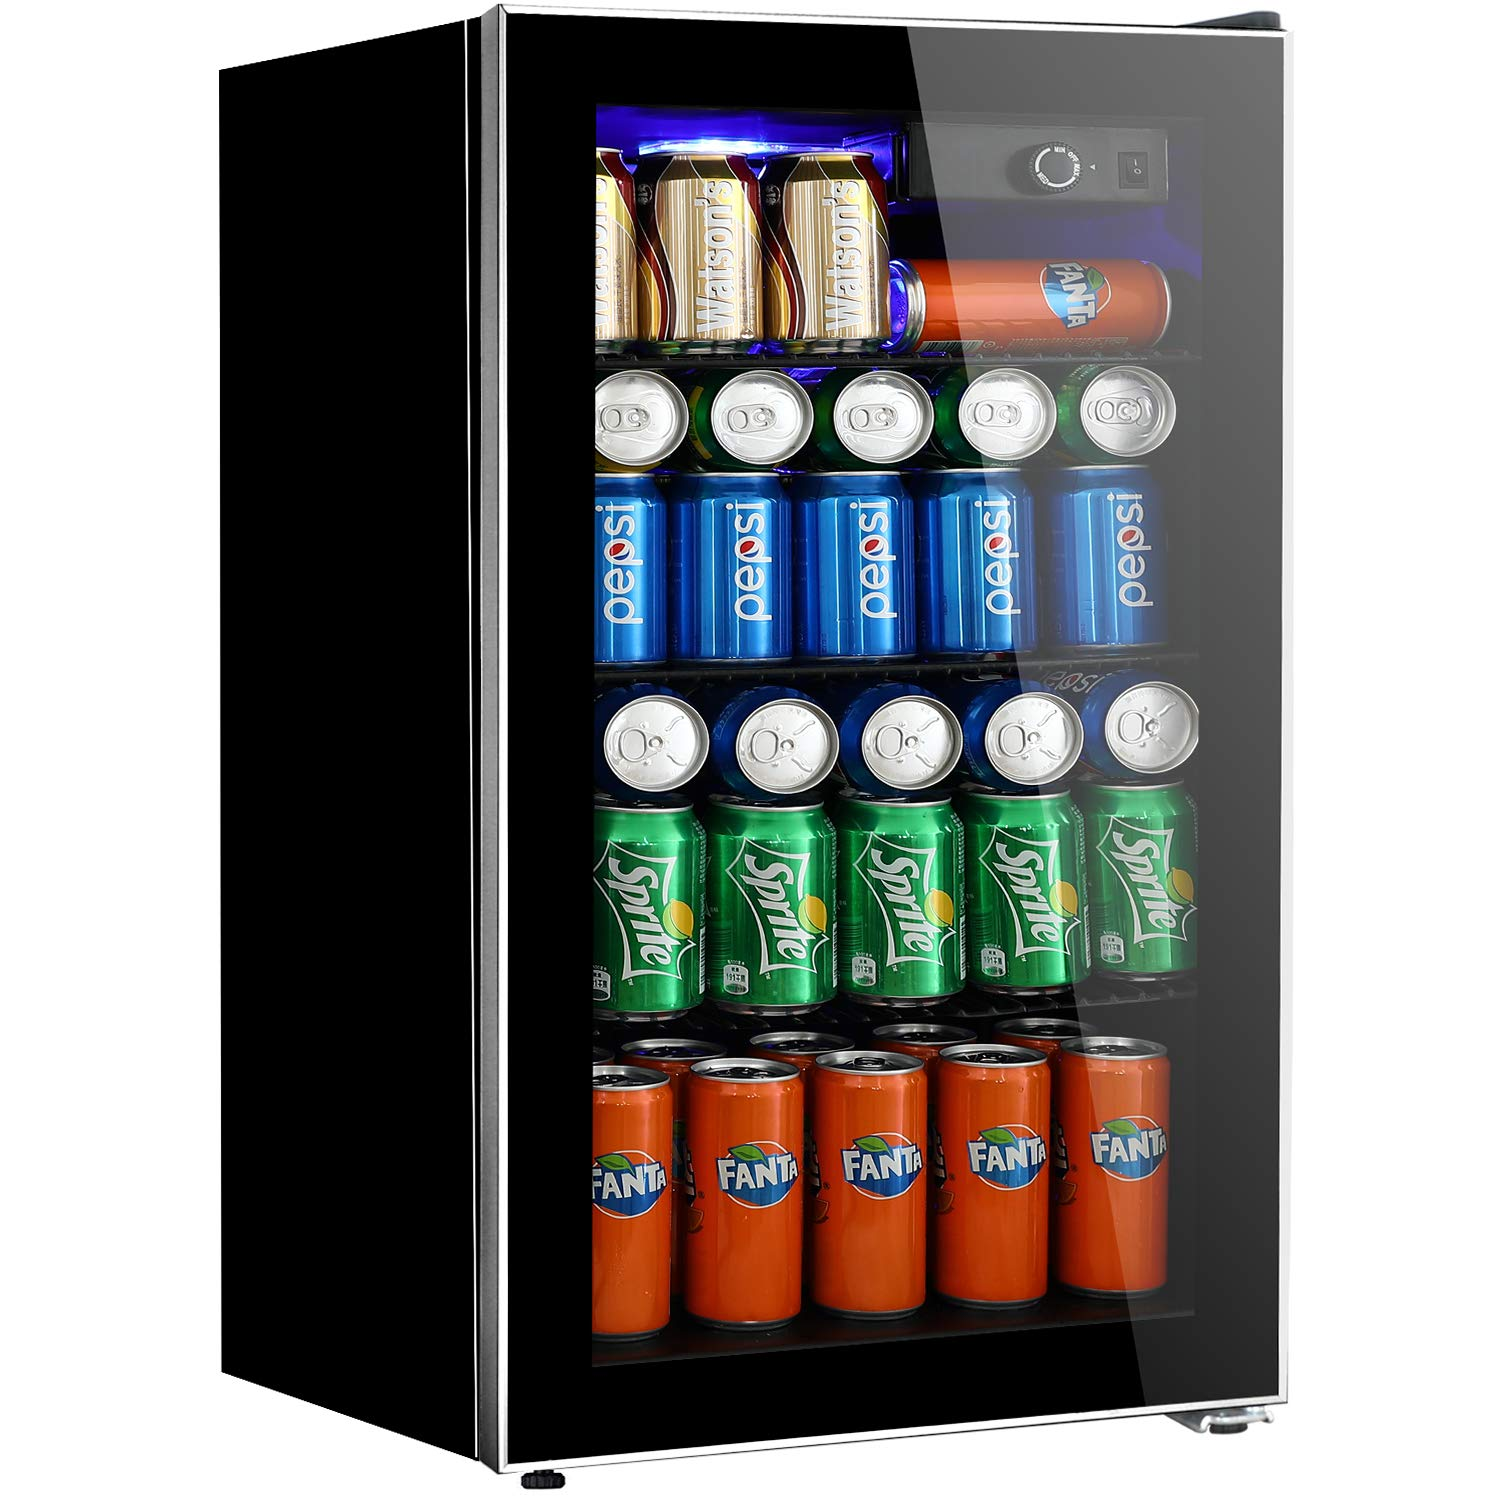 Tavata Beverage Refrigerator and Cooler - 3.2 Cu. Ft. Drink Fridge with Glass Door for Soda, Beer or Wine - Small Beverage Center with 3 Removable Shelves for Office/Man Cave/Basements/Home Bar by Tavata